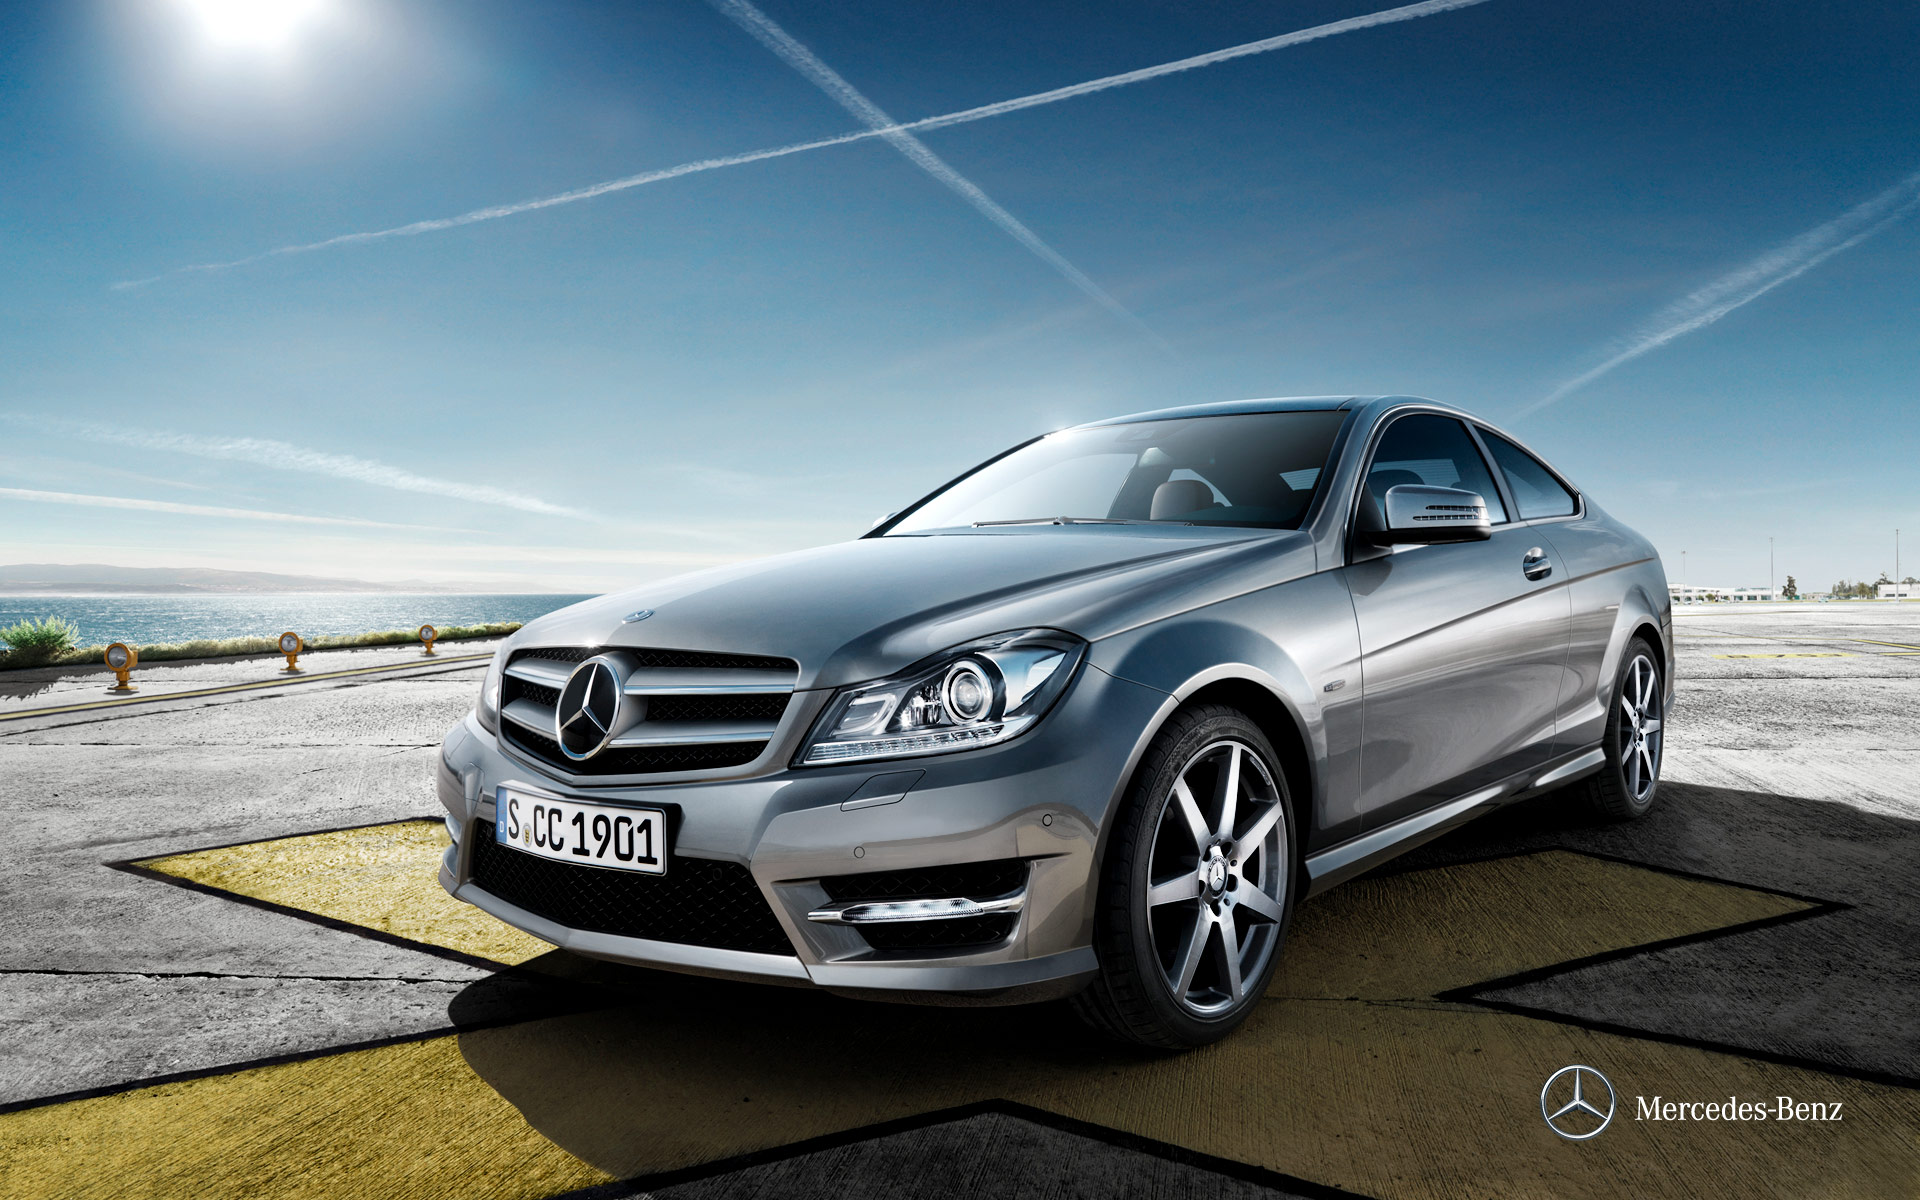 Mercedes benz c class 2012 c 180 in uae new car prices for 2012 mercedes benz c350 price